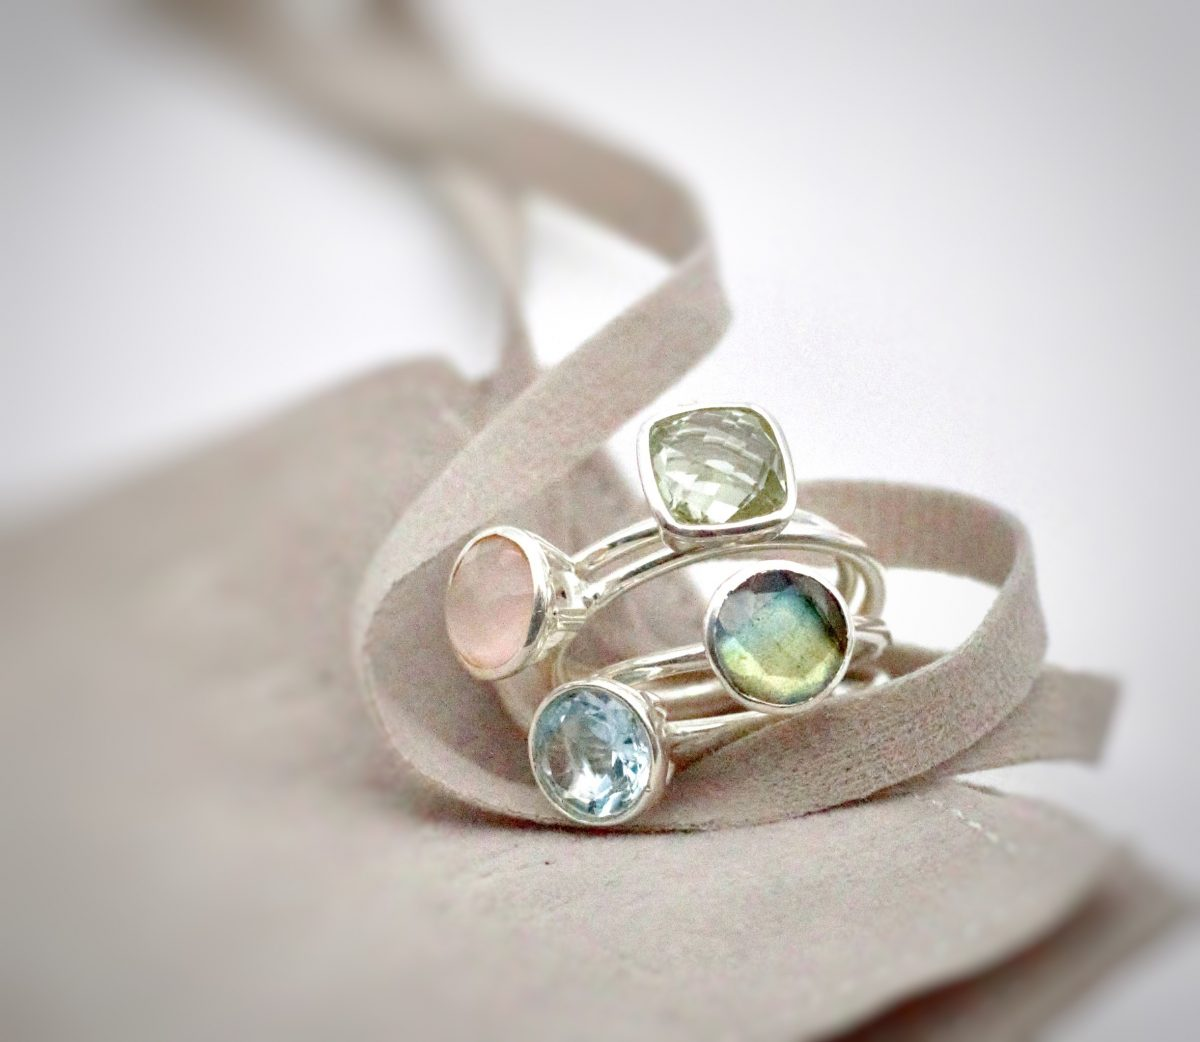 Silver rings. gem jewellery, pink chalcedony stacking ring, sky blue topaz stacking ring, labradorite stacking ring, green amethyst stacking ring.